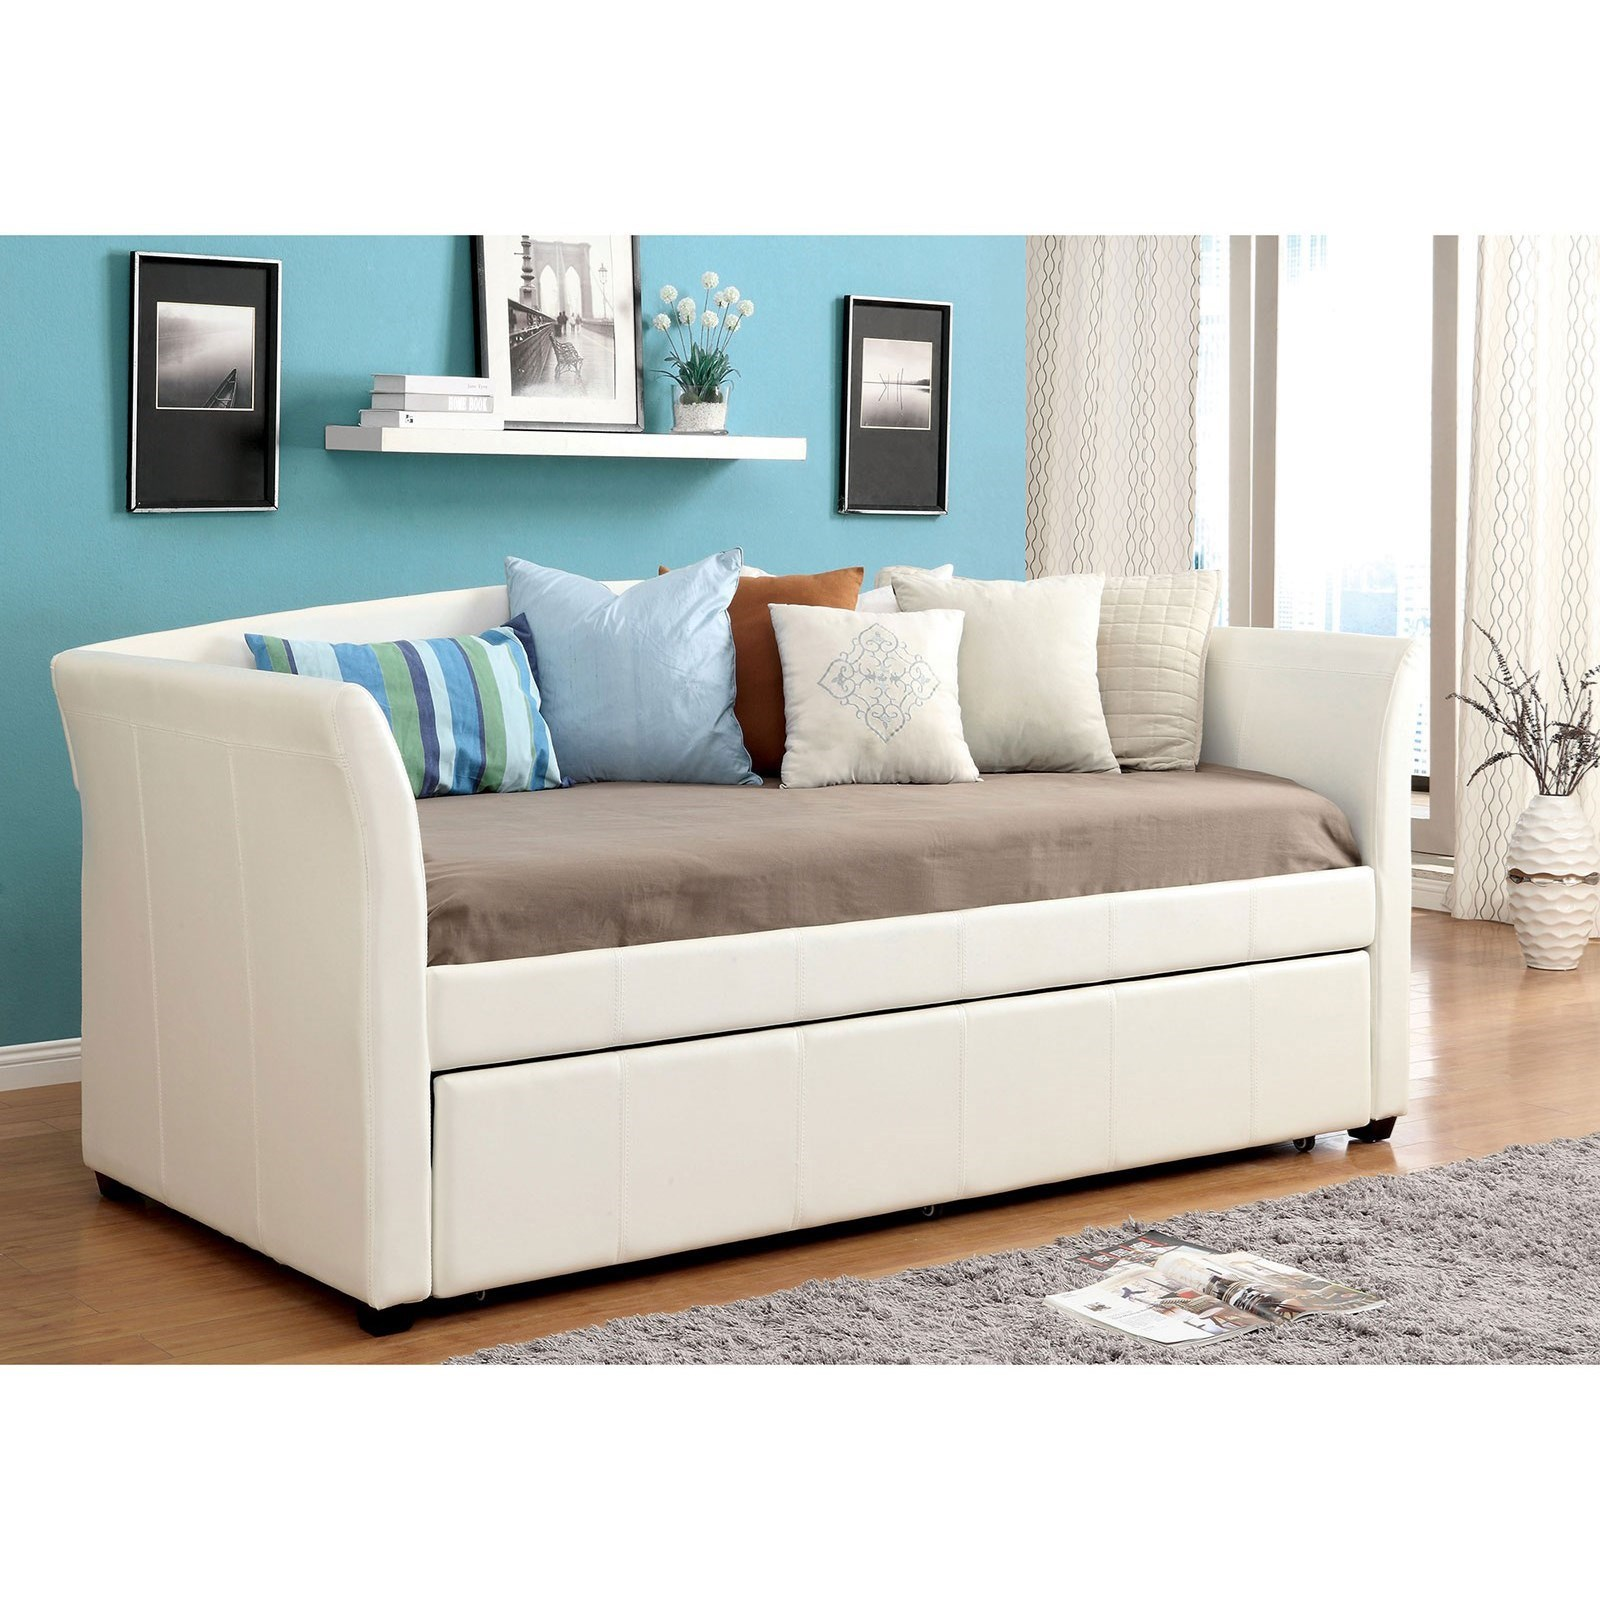 Delmar Daybed with Trundle at Household Furniture